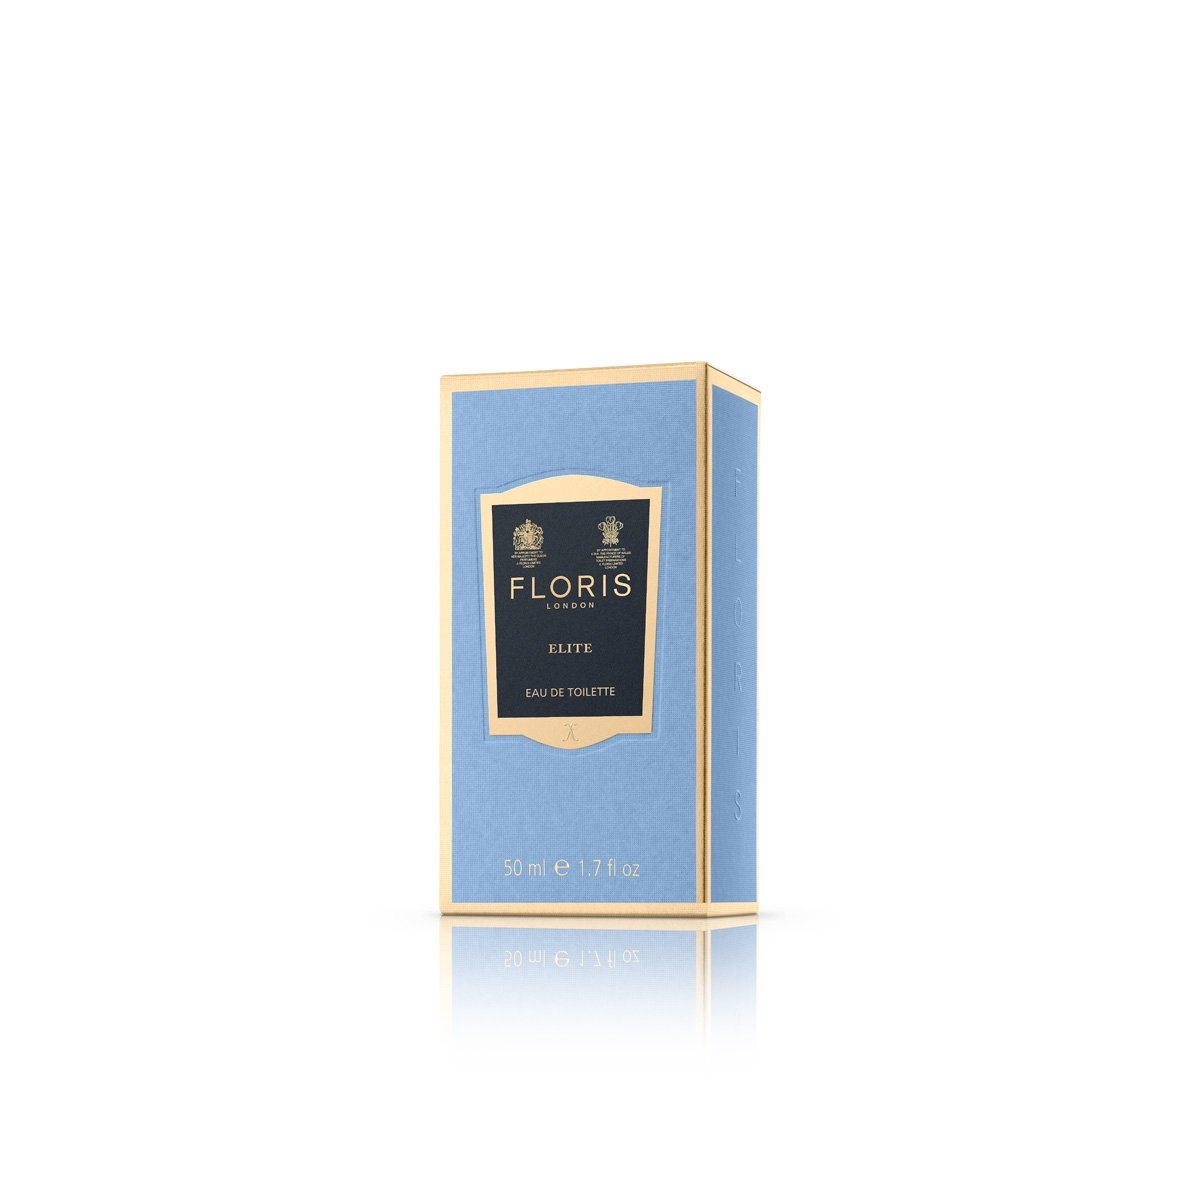 Elite - Eau de Toilette 50ml